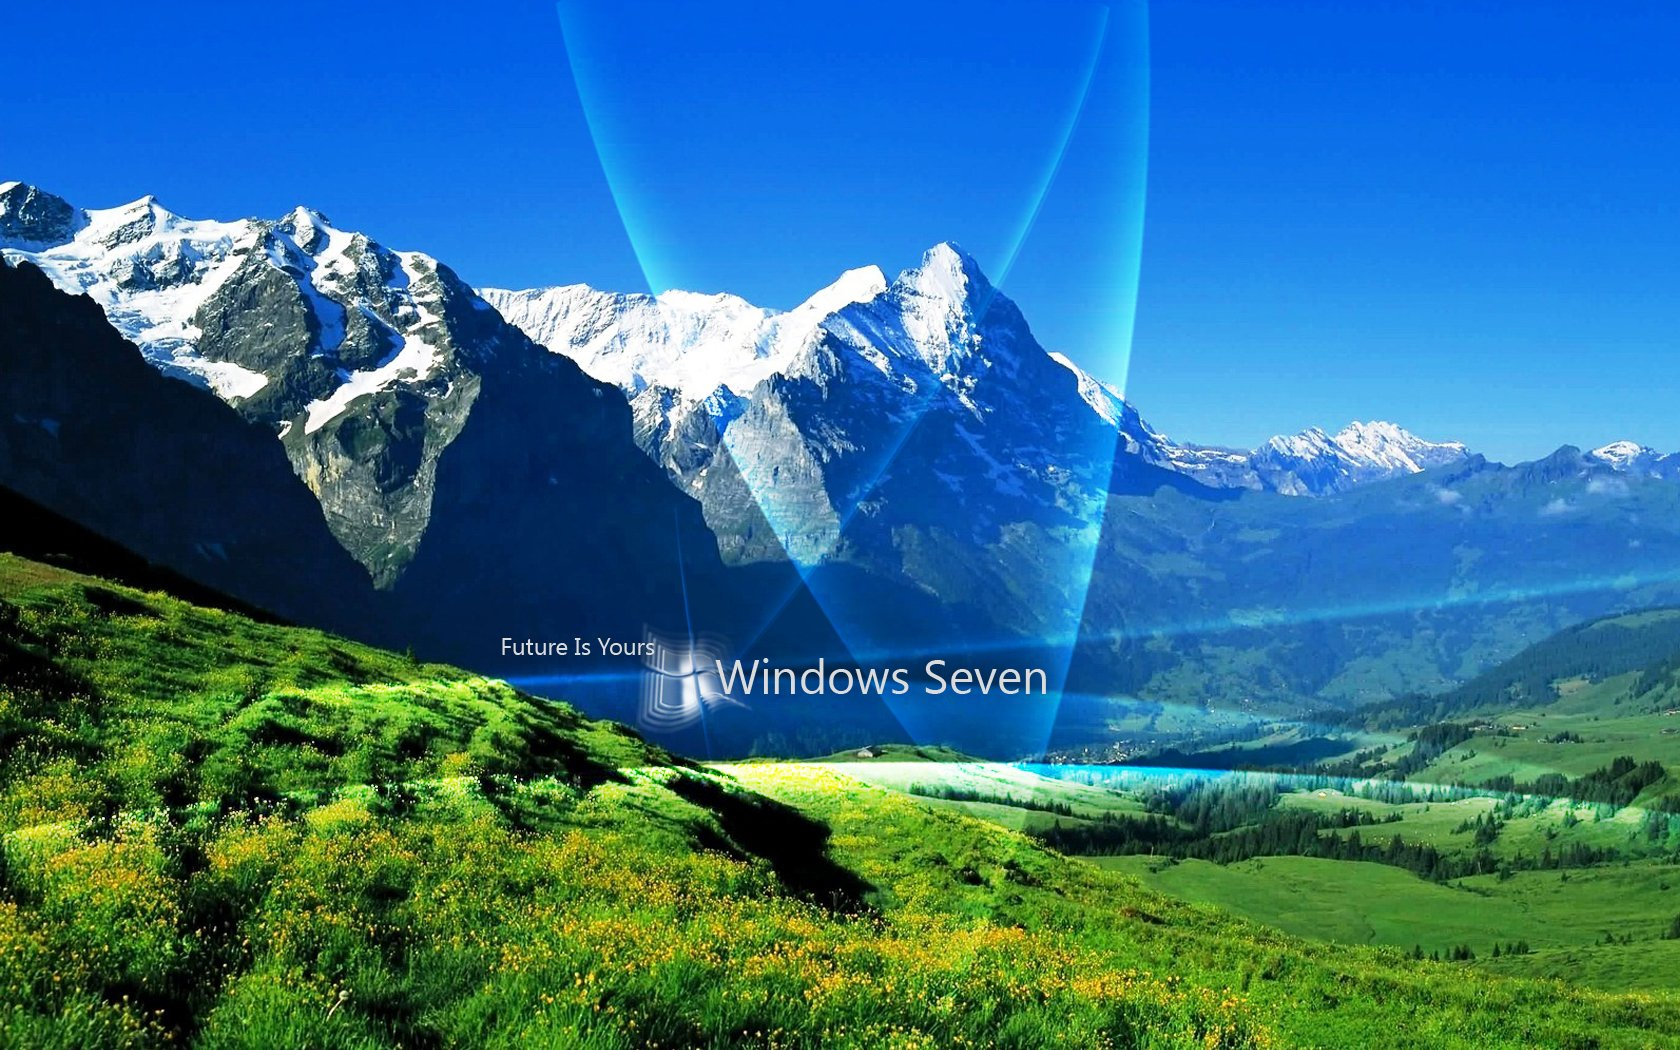 Windows7 Wallpapers 1680x1050